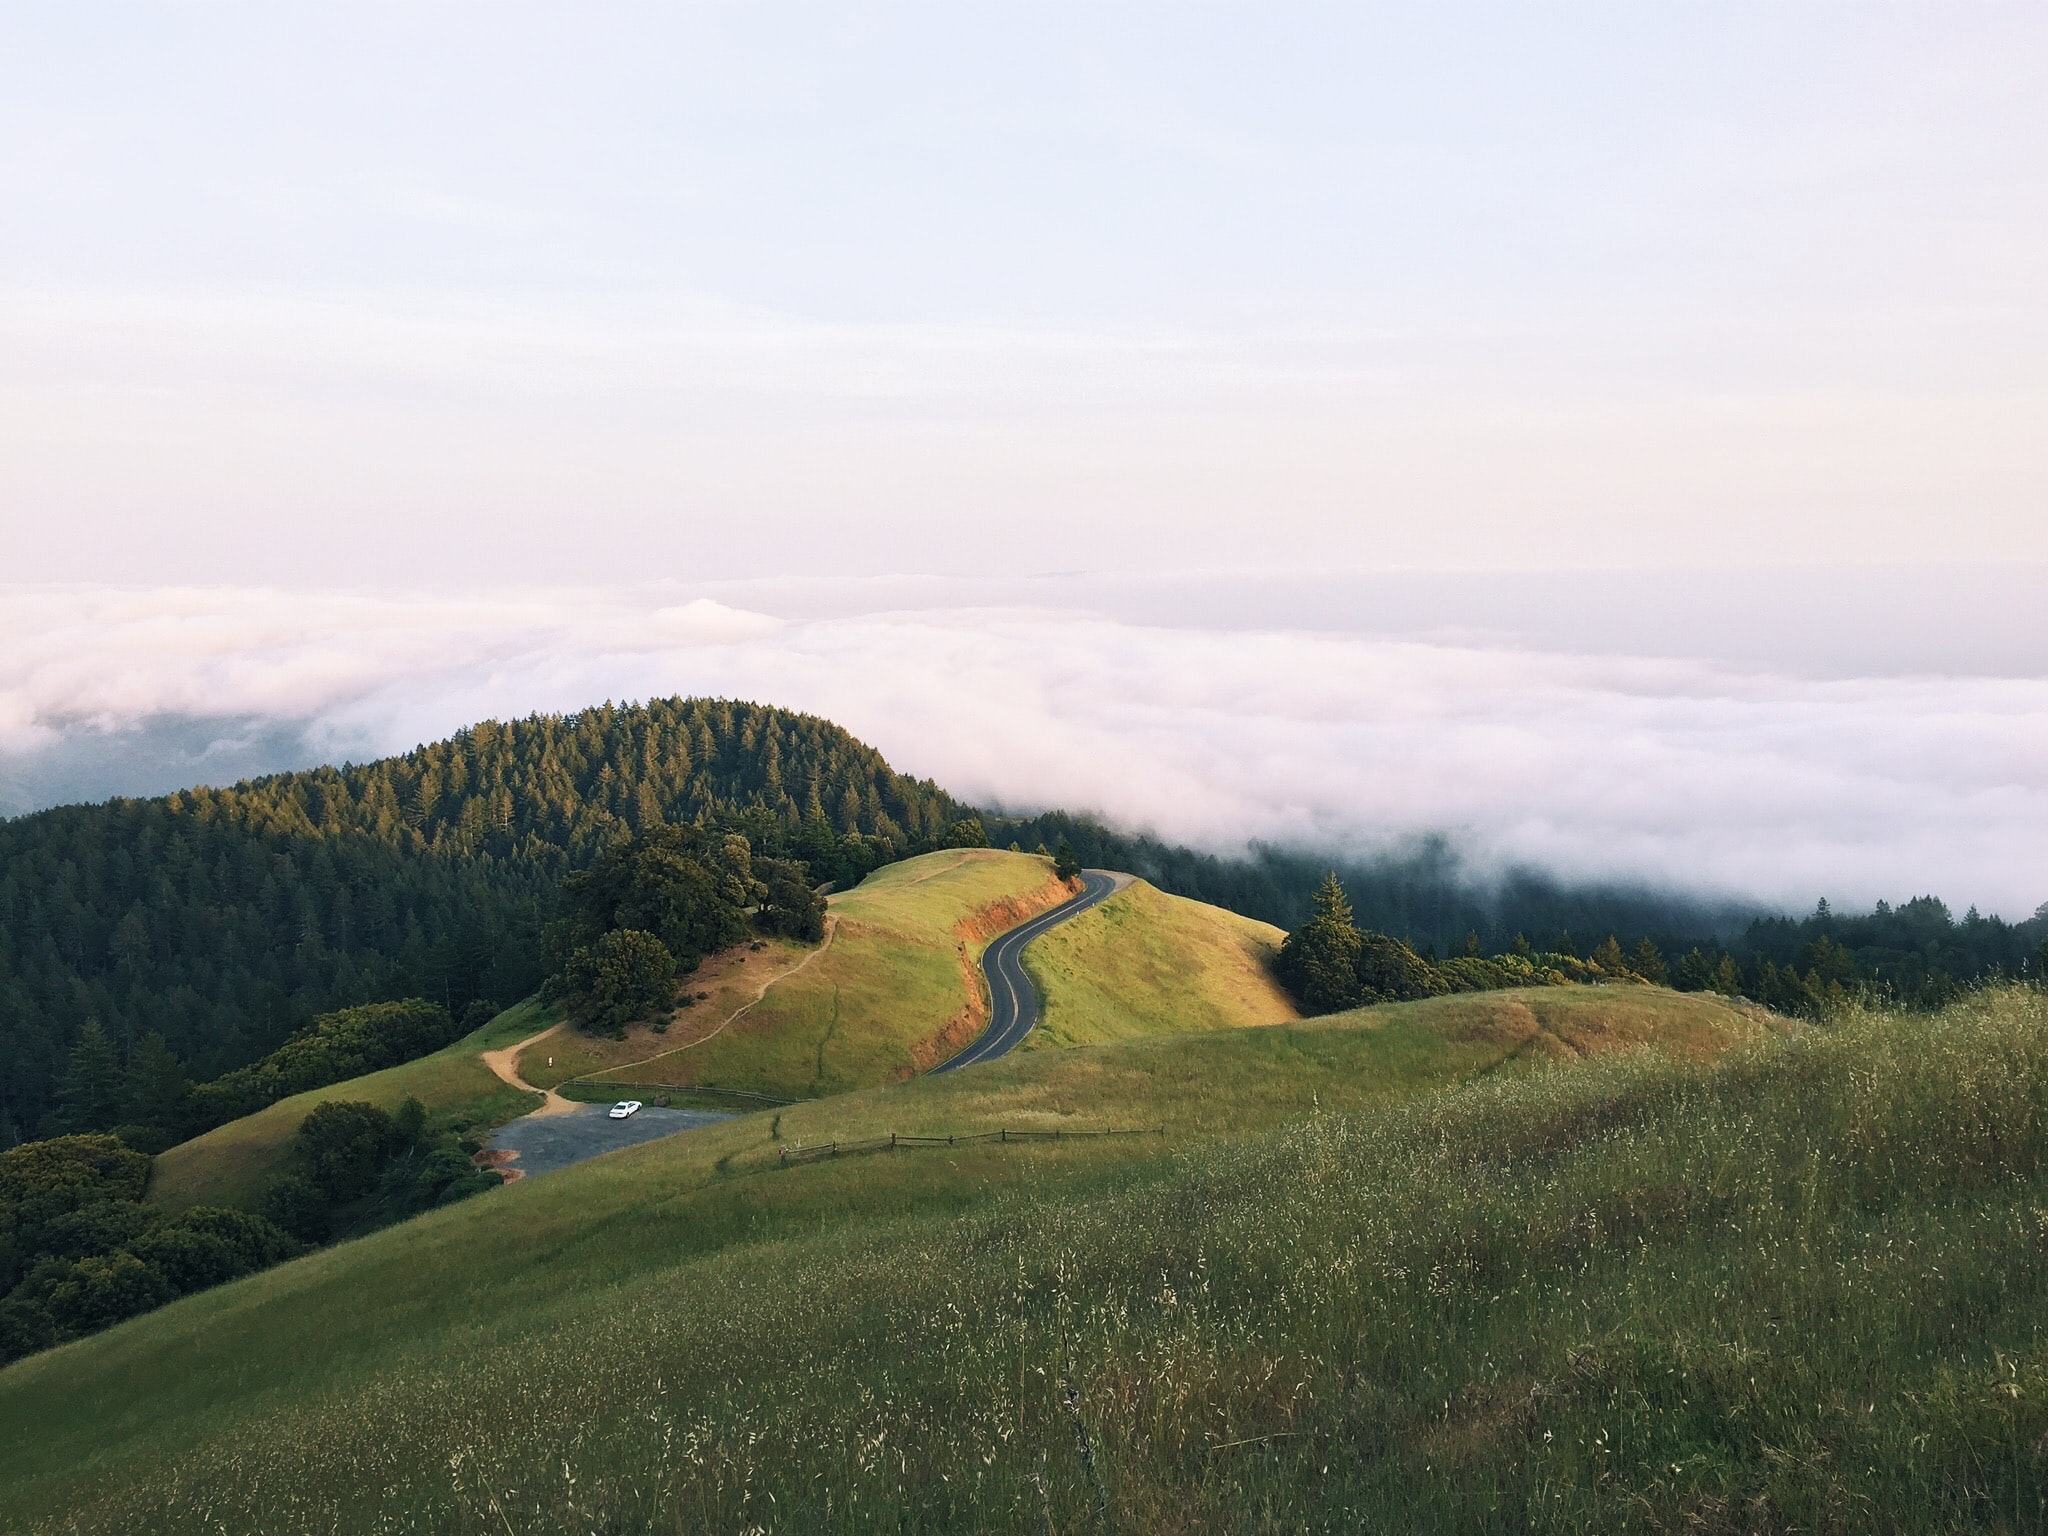 A winding road through a green grassy valley surrounded by trees